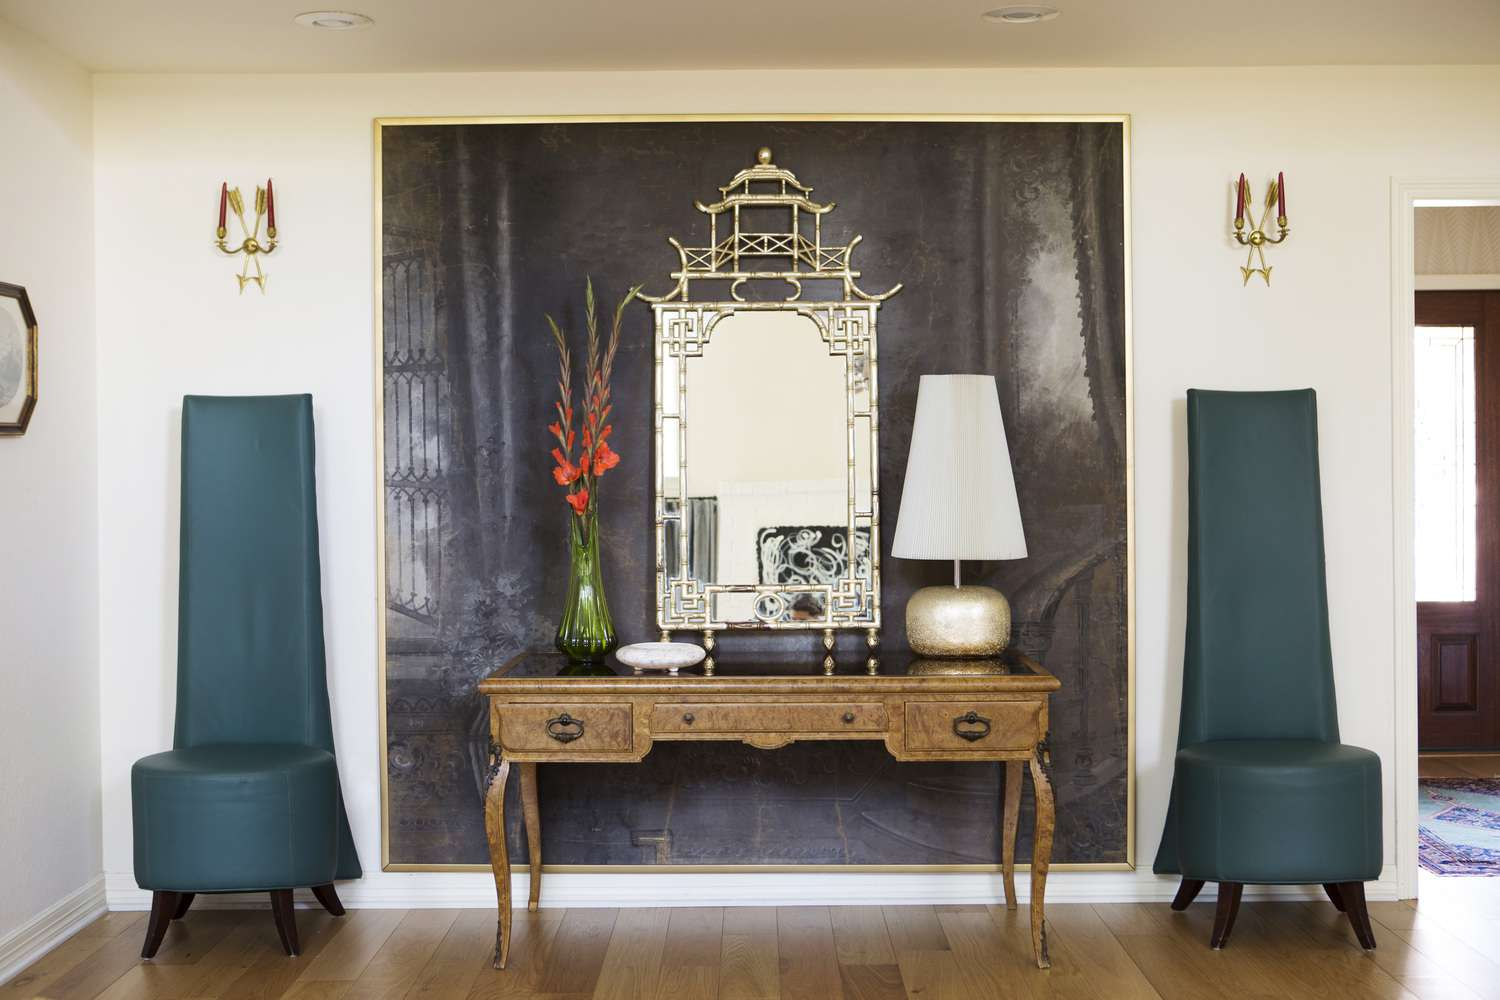 room with two tall decorative teal chairs, oversized artwork serving as backdrop between them. Decorative mirror on desk leaned against artwork